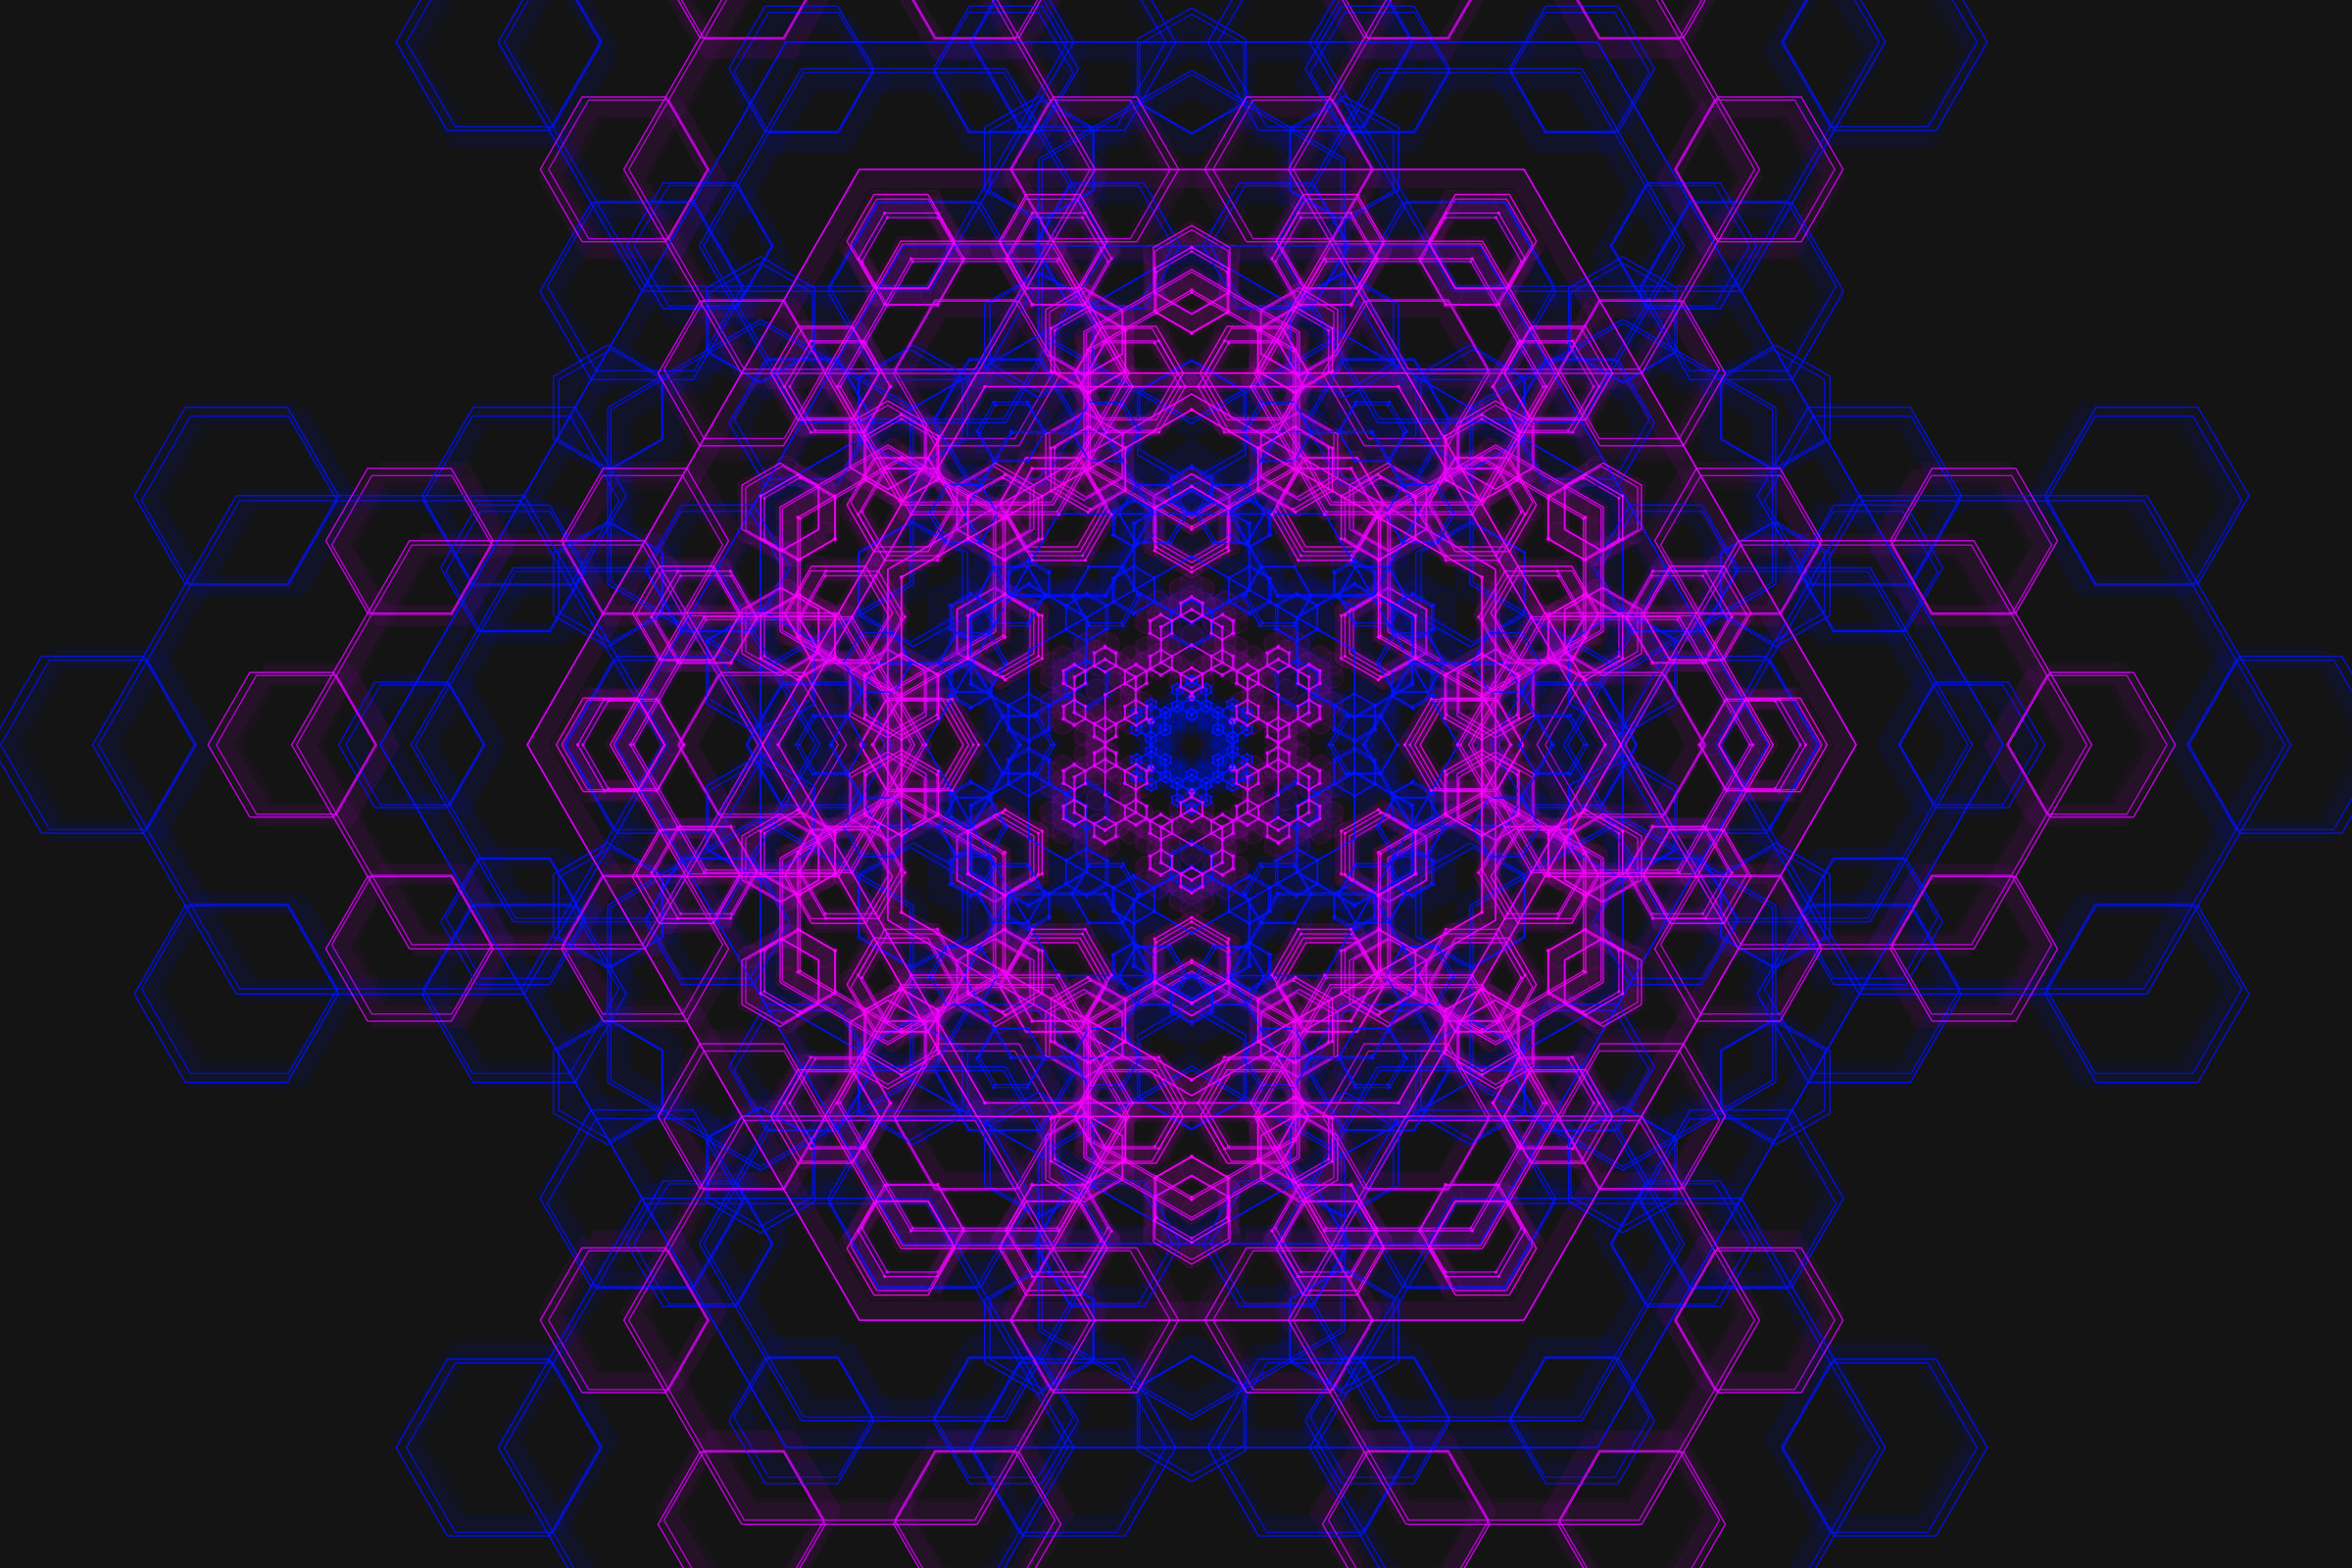 Sacred geometry wallpaper hd 65 images - Geometric desktop background ...